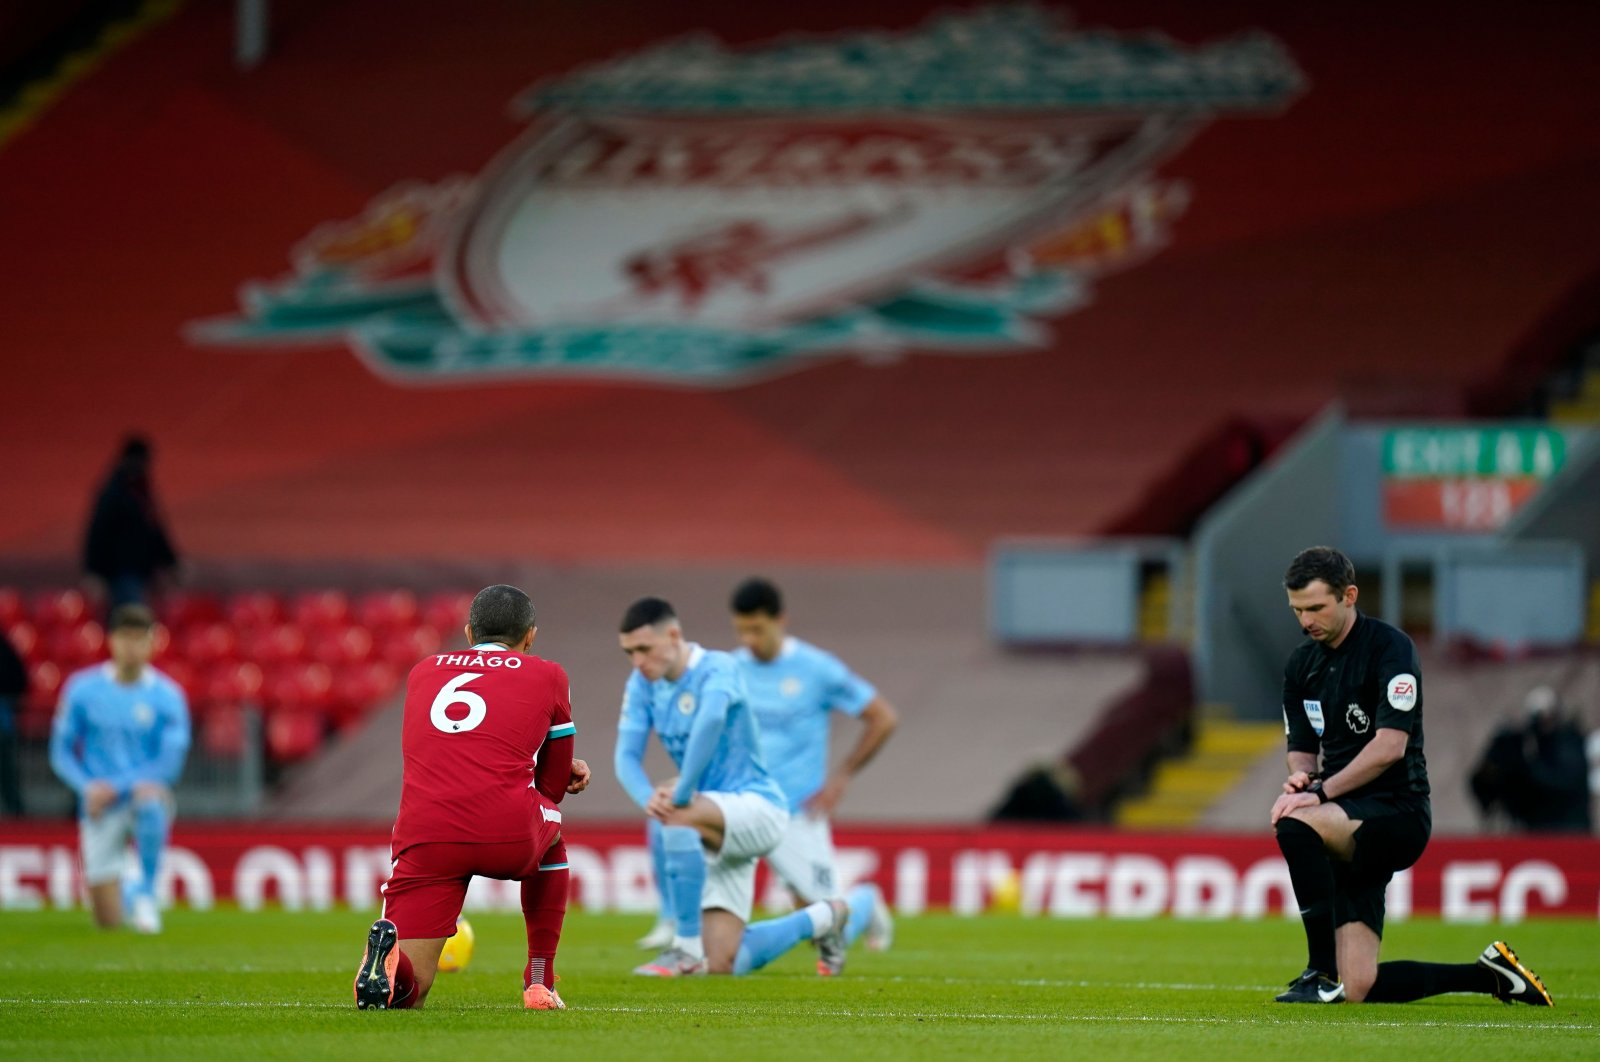 """English referee Michael Oliver (R) and players """"take a knee"""" in support of the No Room For Racism campaign ahead of a Premier League match between Liverpool and Manchester City at Anfield in Liverpool, England, Feb. 7, 2021. (AFP Photo)"""